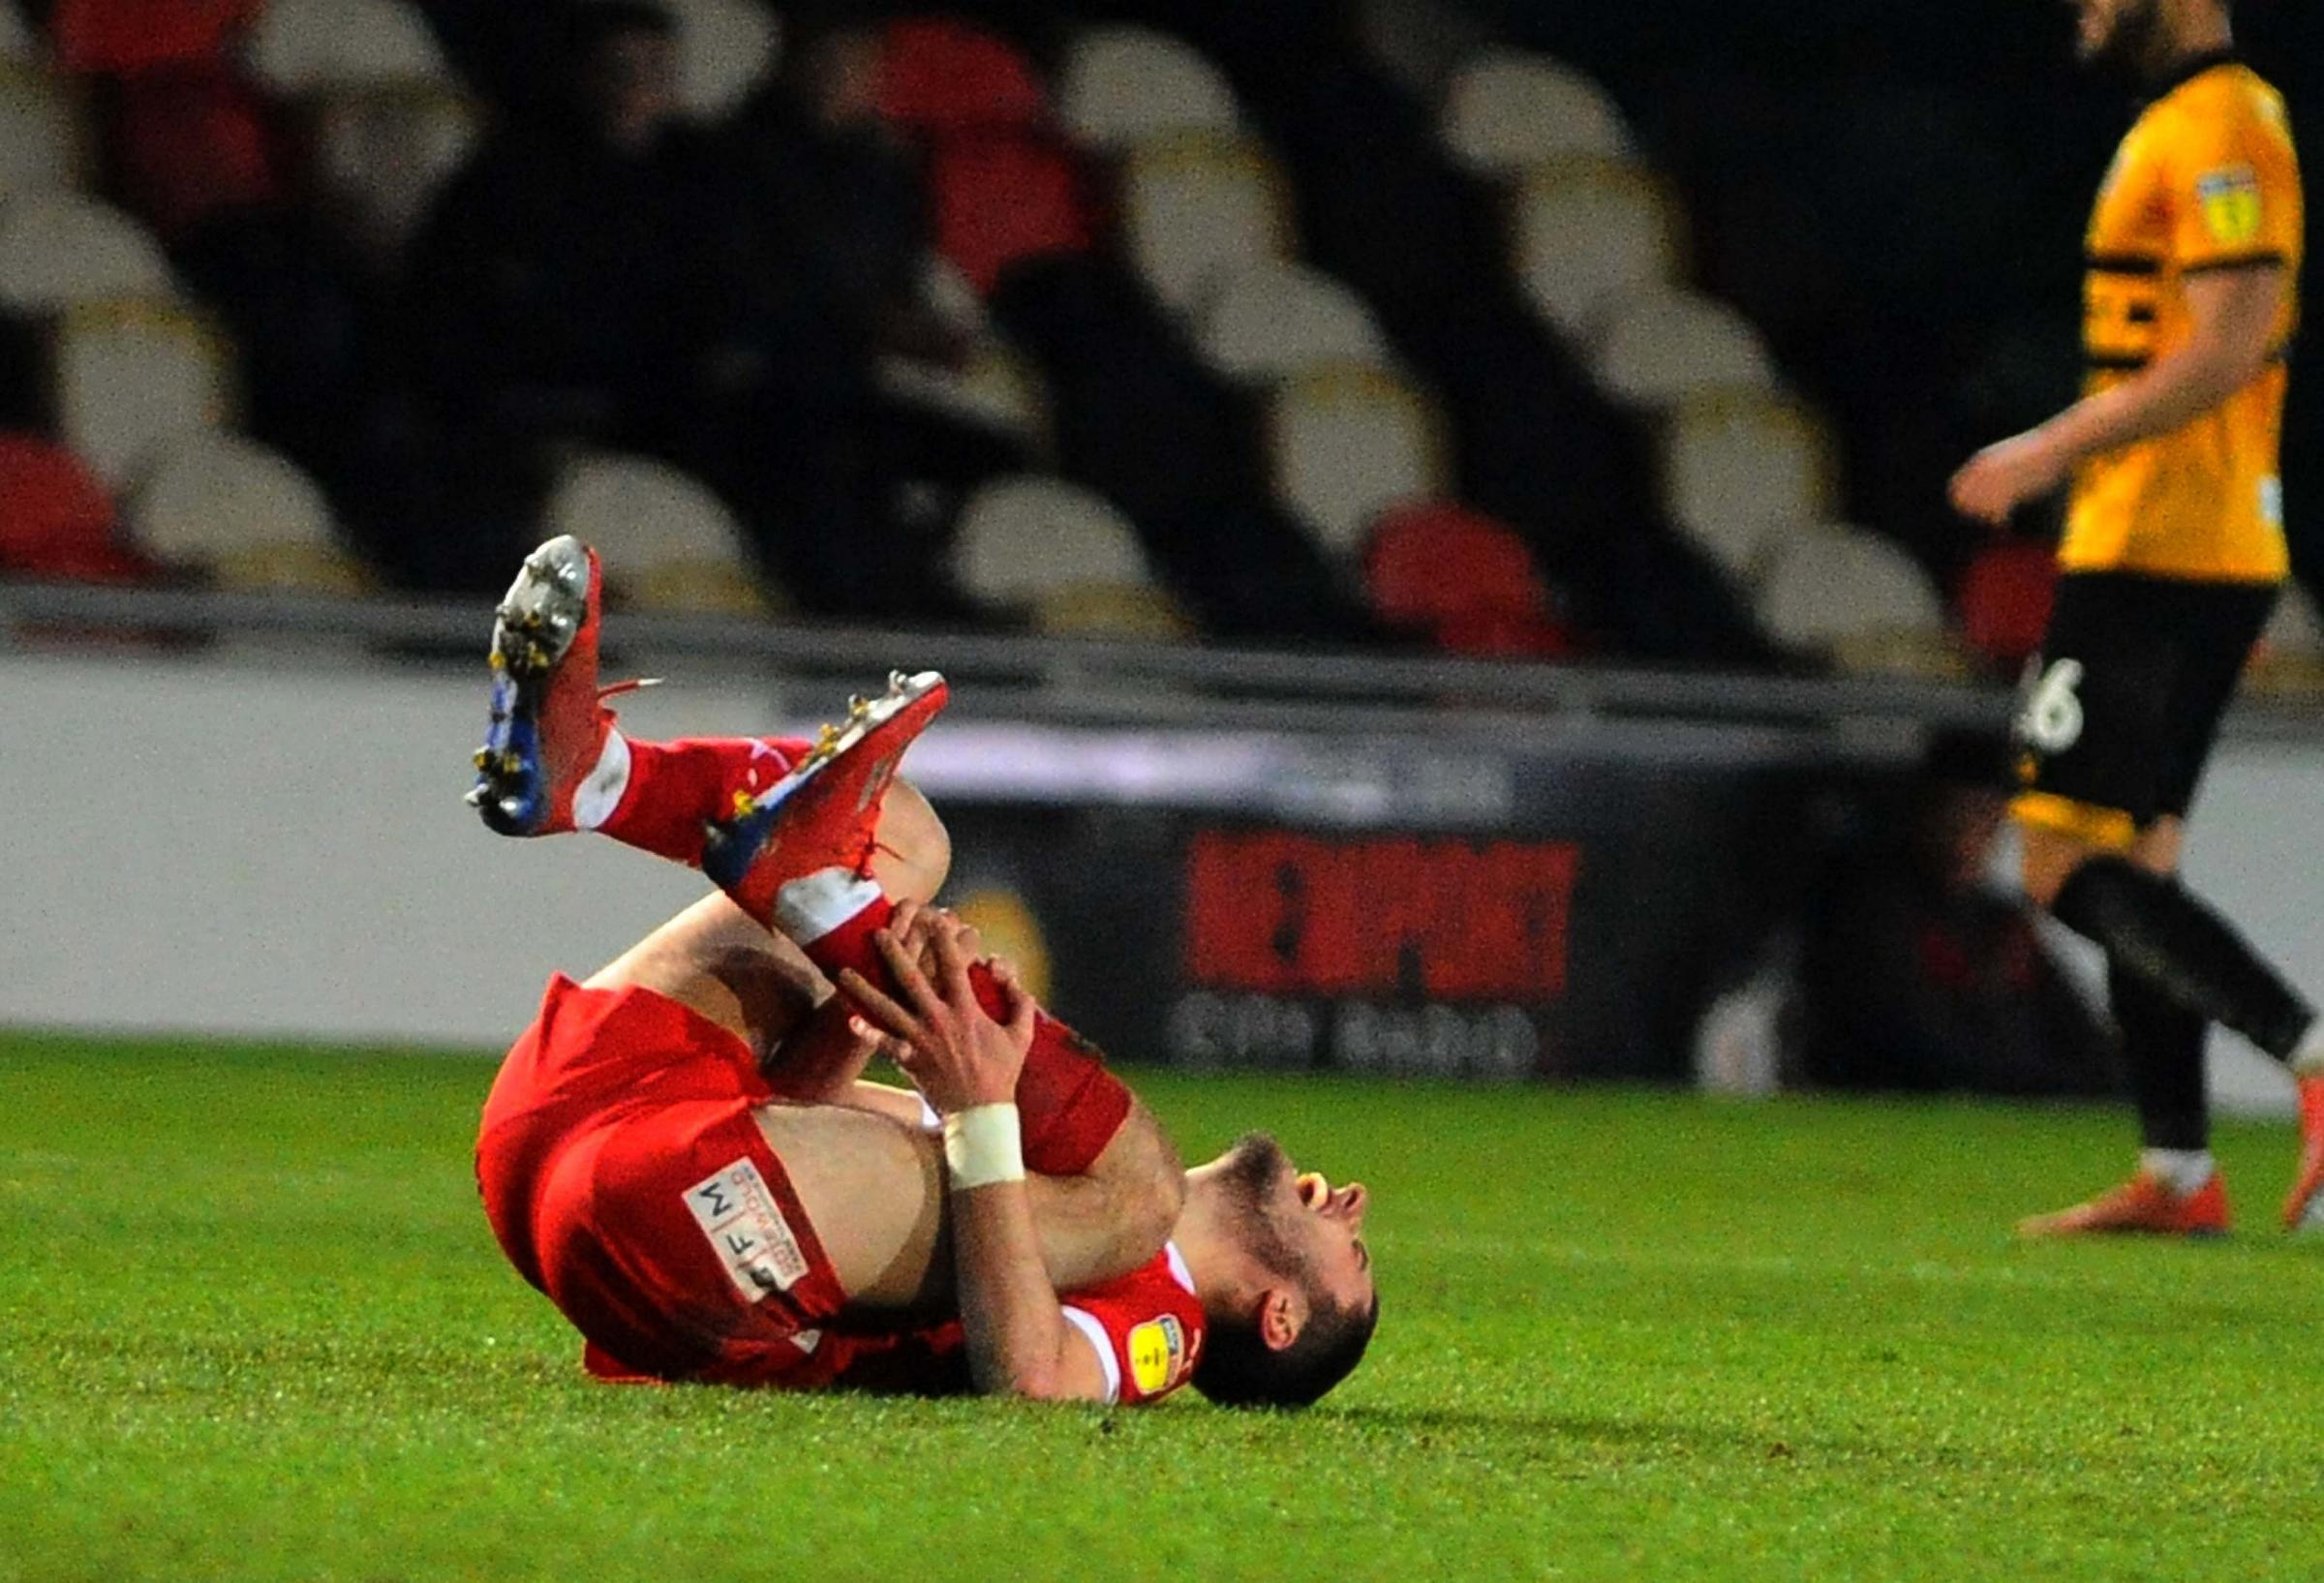 Swindon Town midfielder Canice Carroll holds his leg in pain during Tuesday night's 0-0 draw away at Newport County - an injury that forced him off the pitch in the closing stages Picture: DAVE EVANS